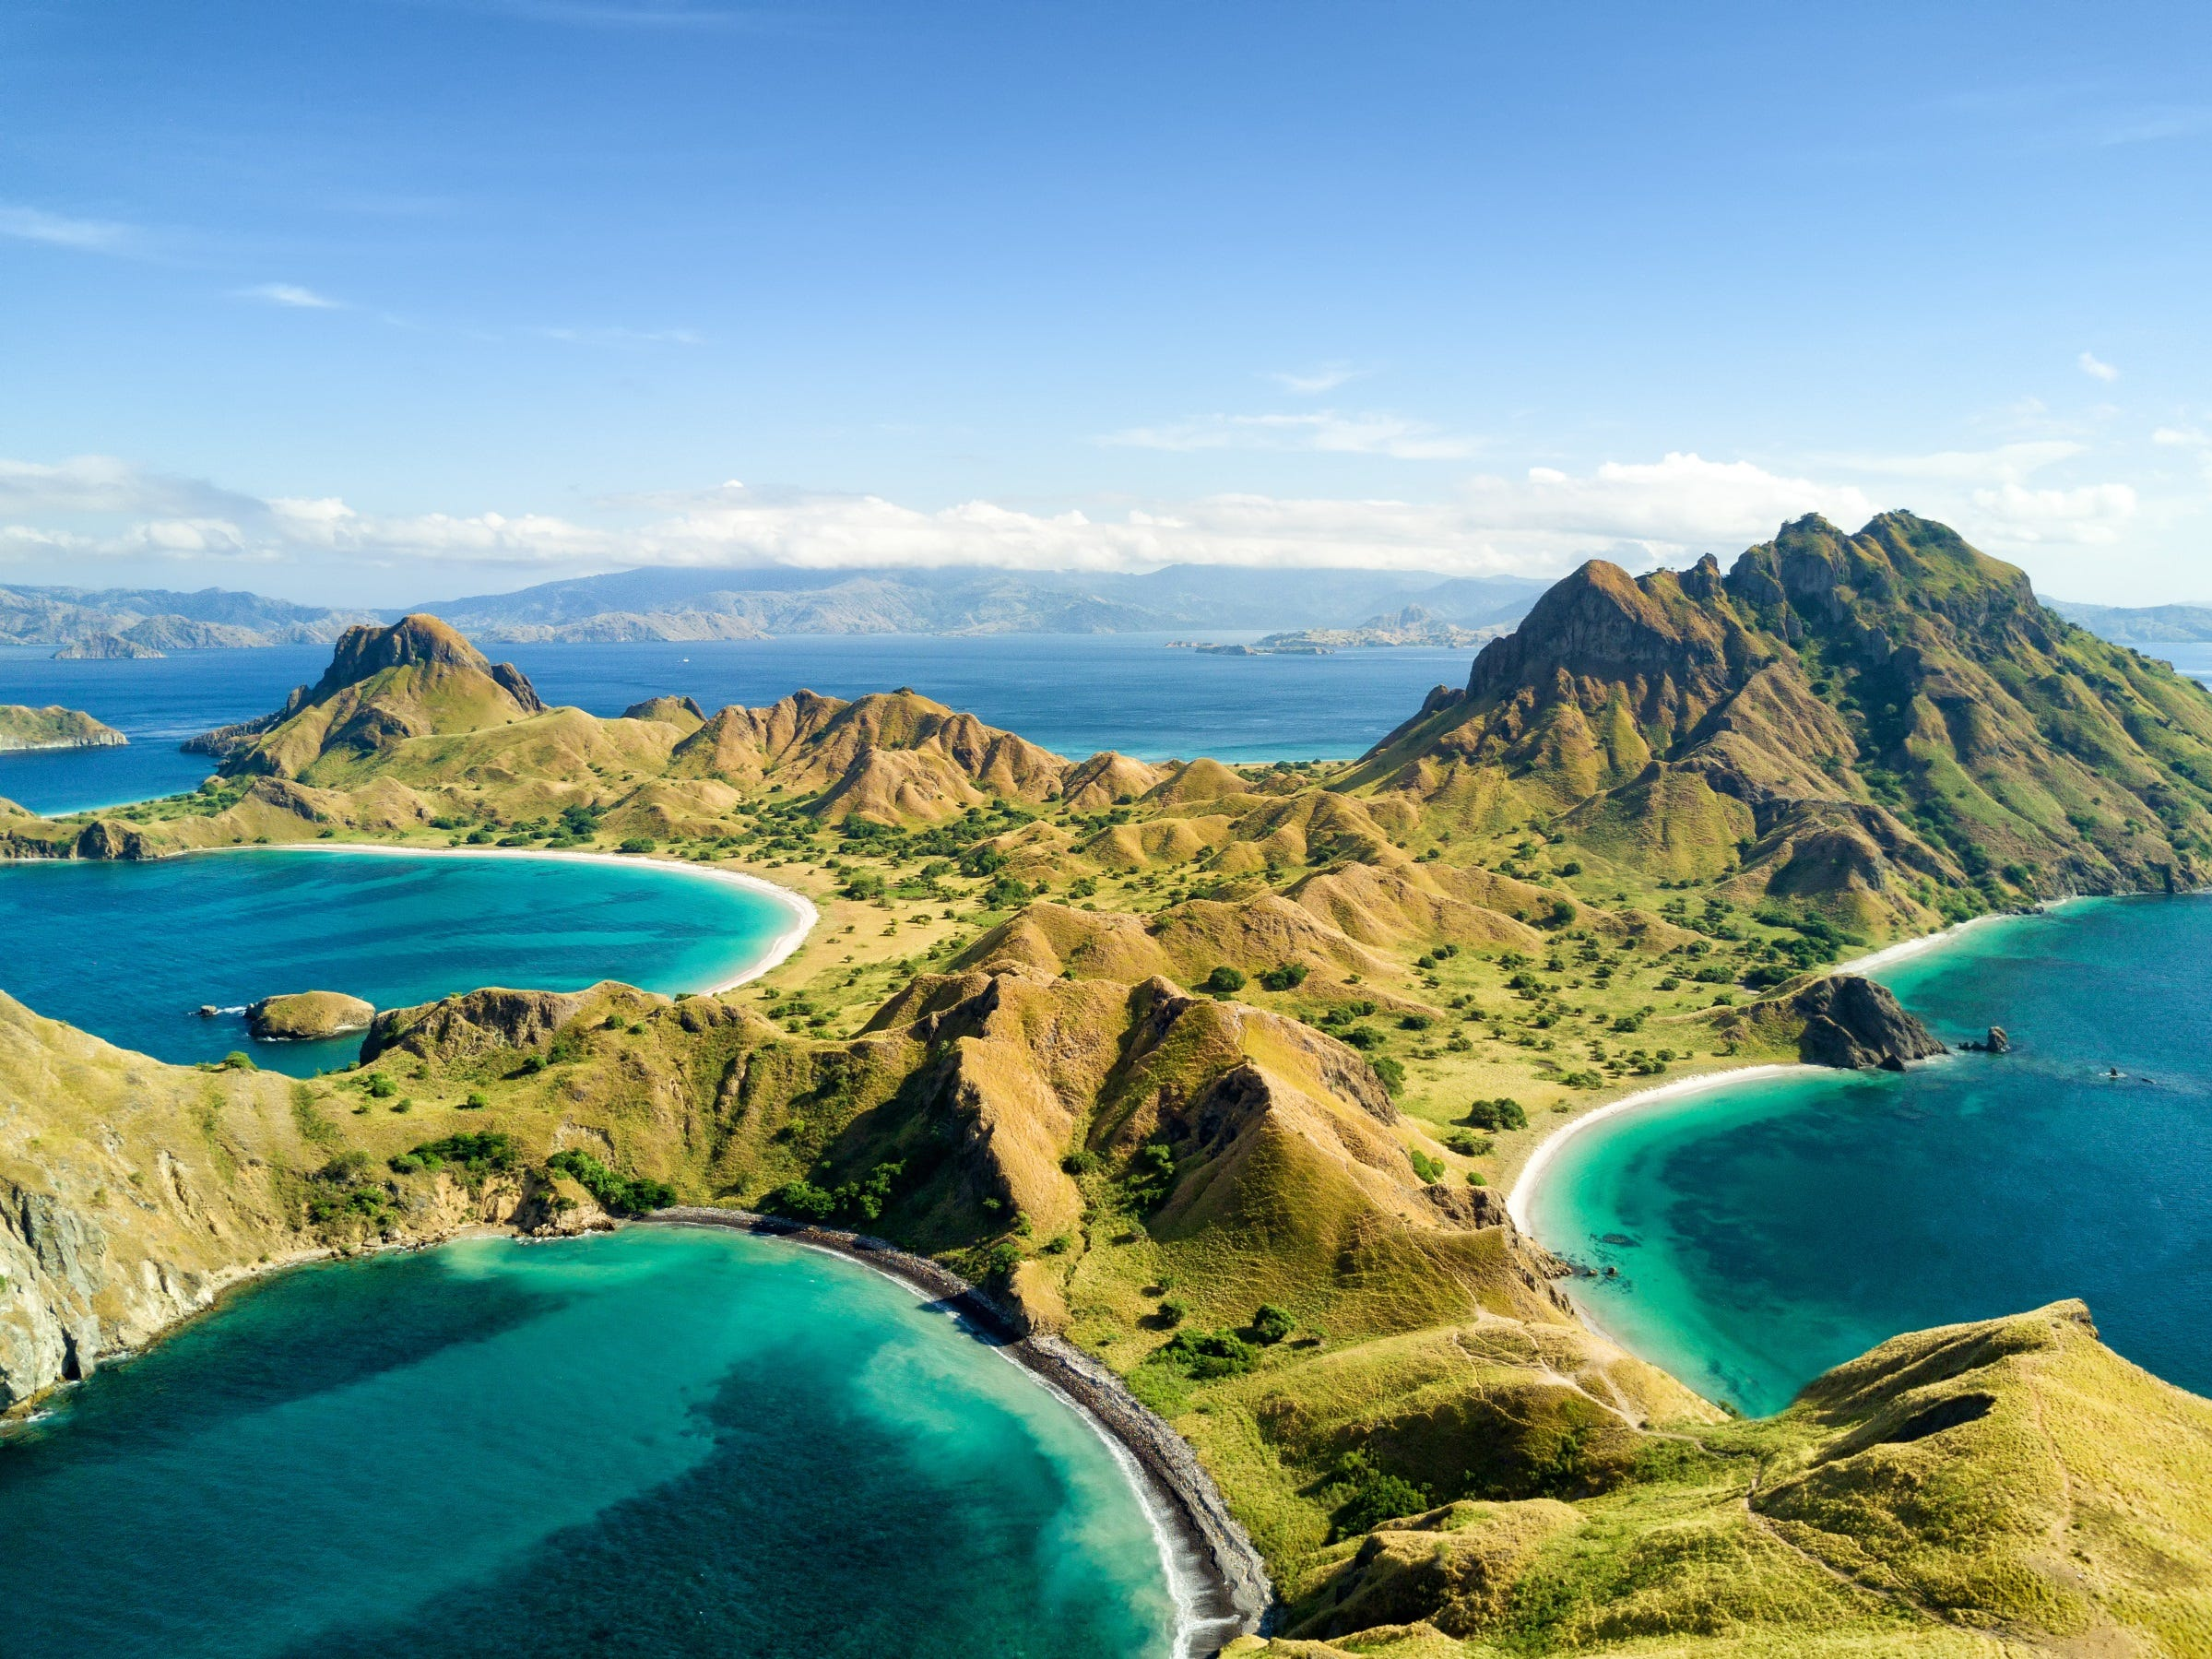 No. 7 on the list of top 10 countries to visit in 2019 is Indonesia. Unforgettable wildlife encounters, endless islands and a cocktail of cultures, cuisines and new flight connections make Indonesia the rising star of Southeast Asia.